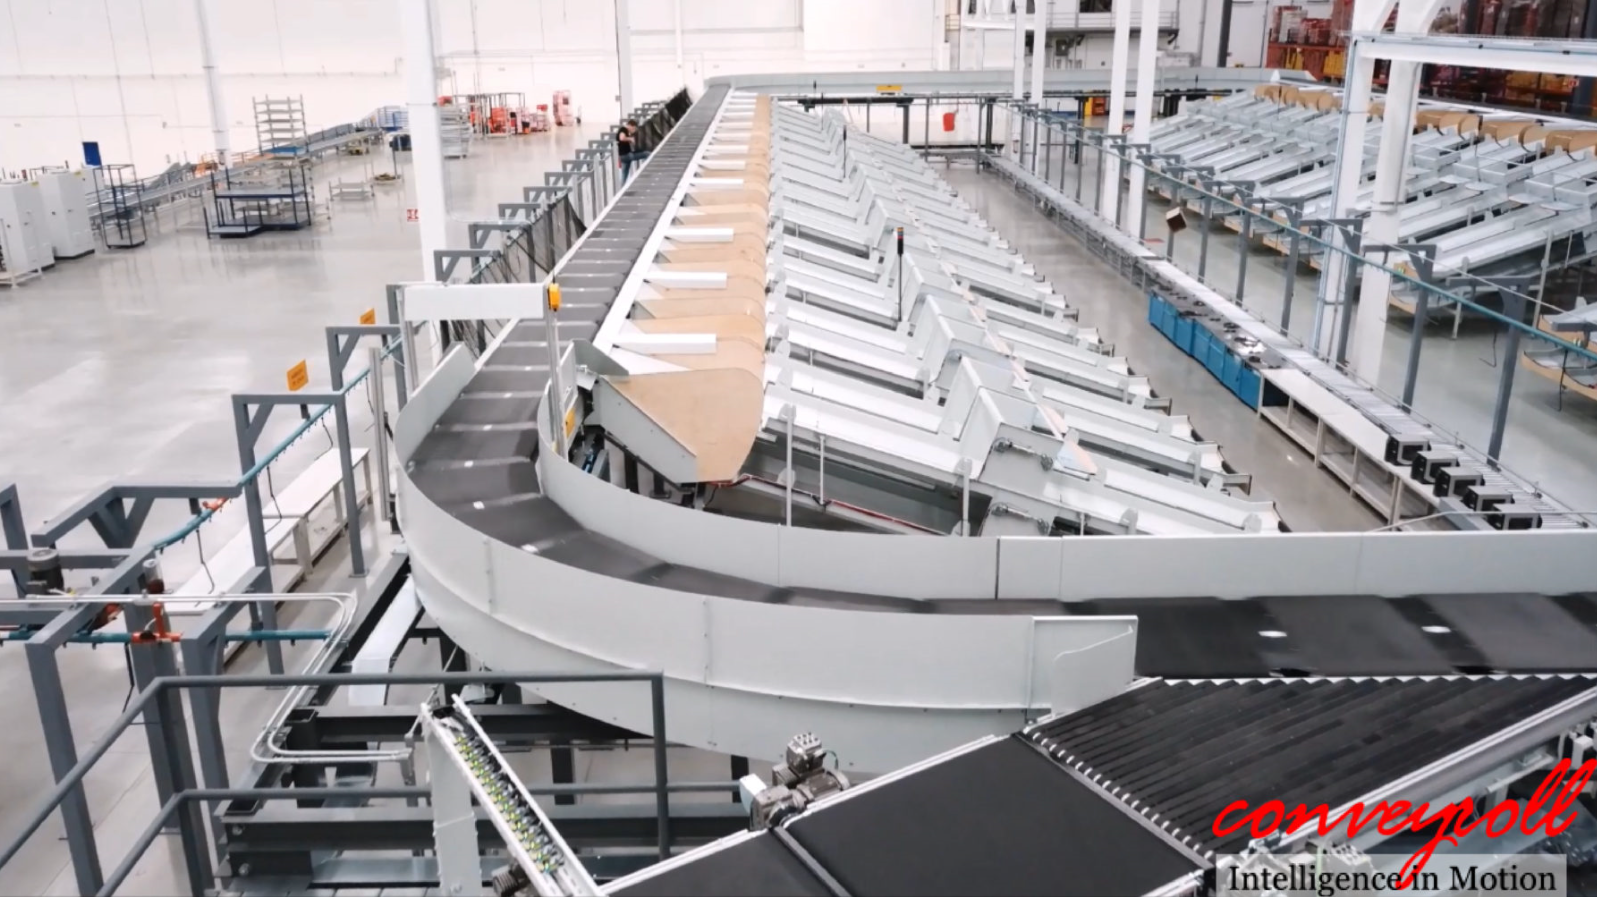 Conveyroll relies on strong partners with proven solutions, like the Interroll Crossbelt Sorter.